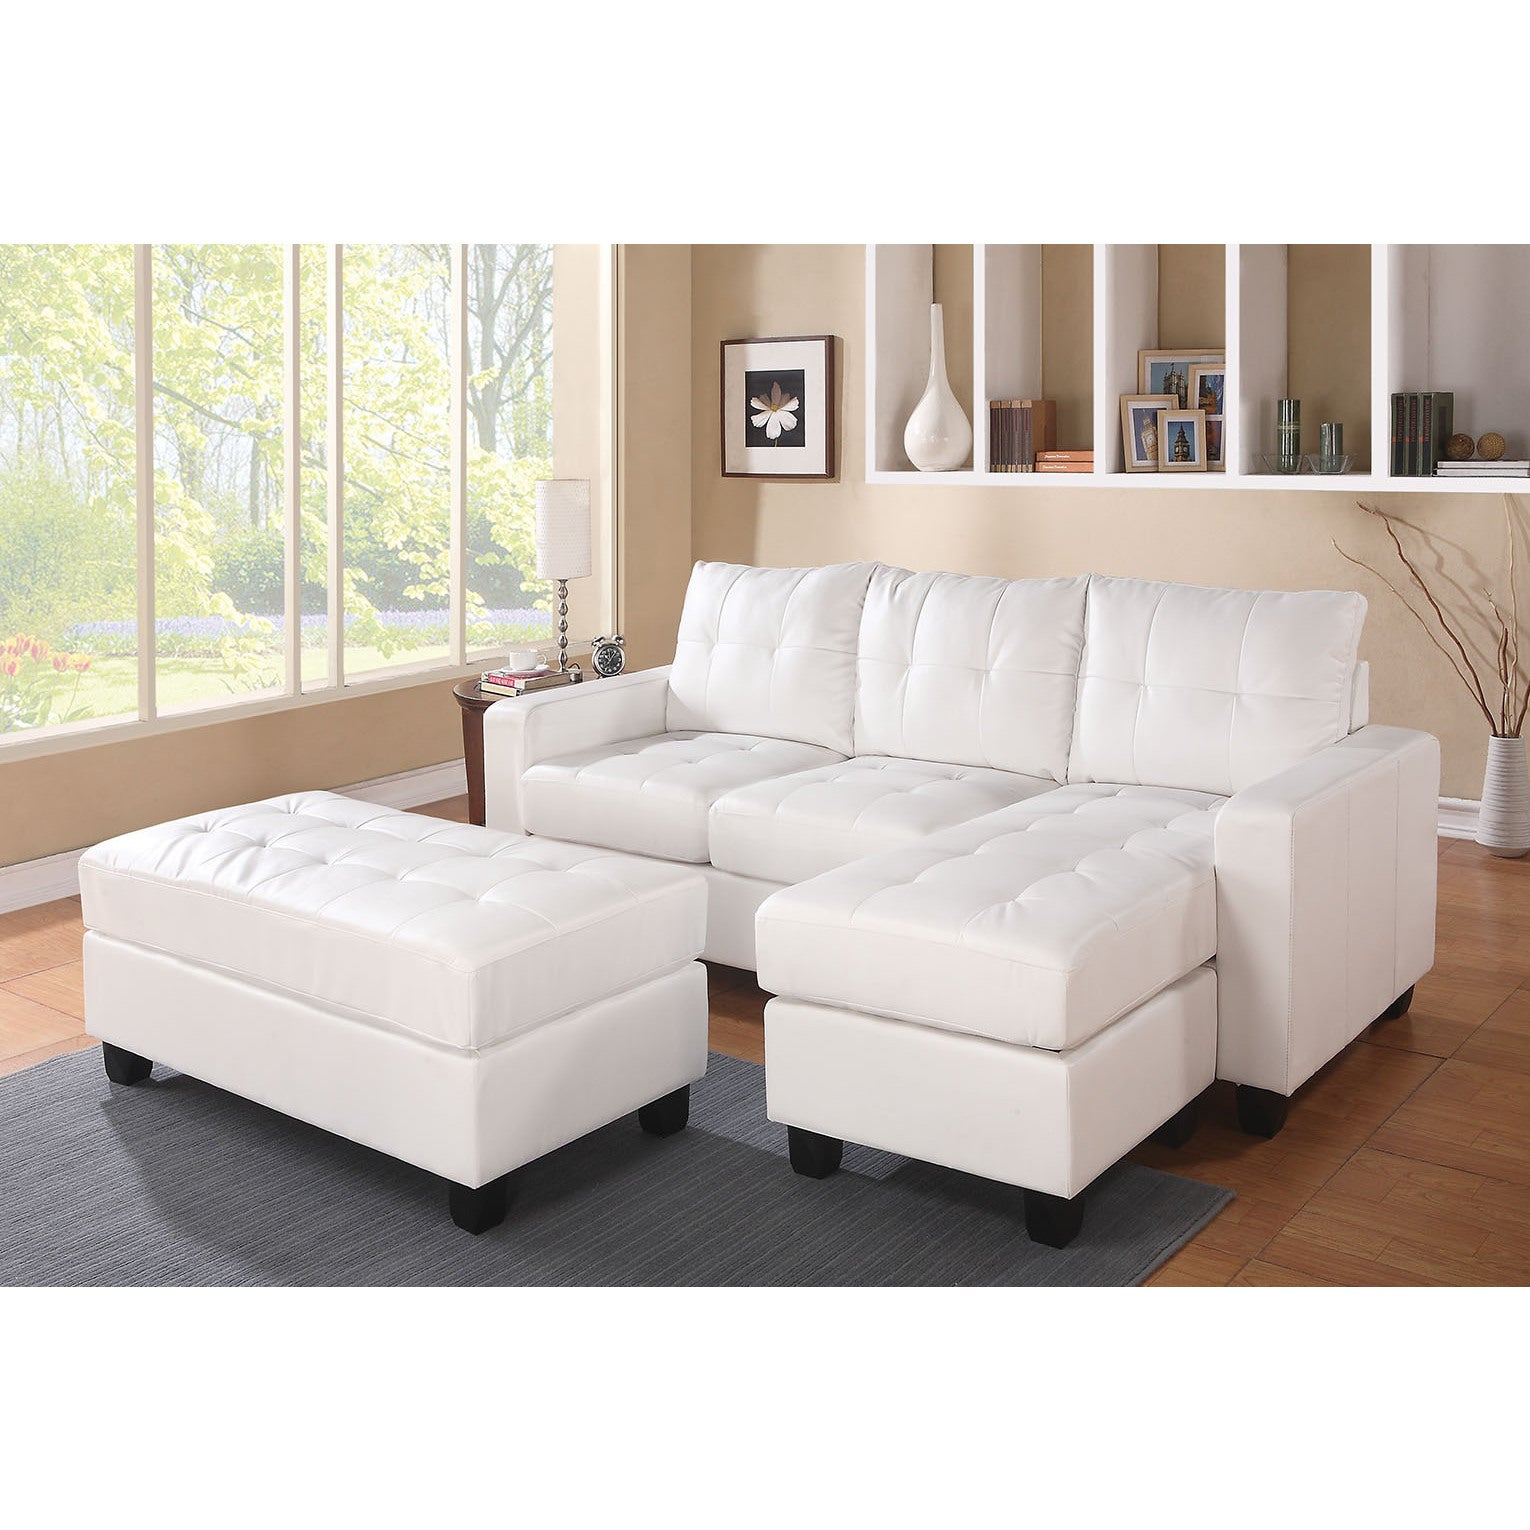 ACME Lyssa Bonded Leather Sectional Sofa with Ottoman (Wh...